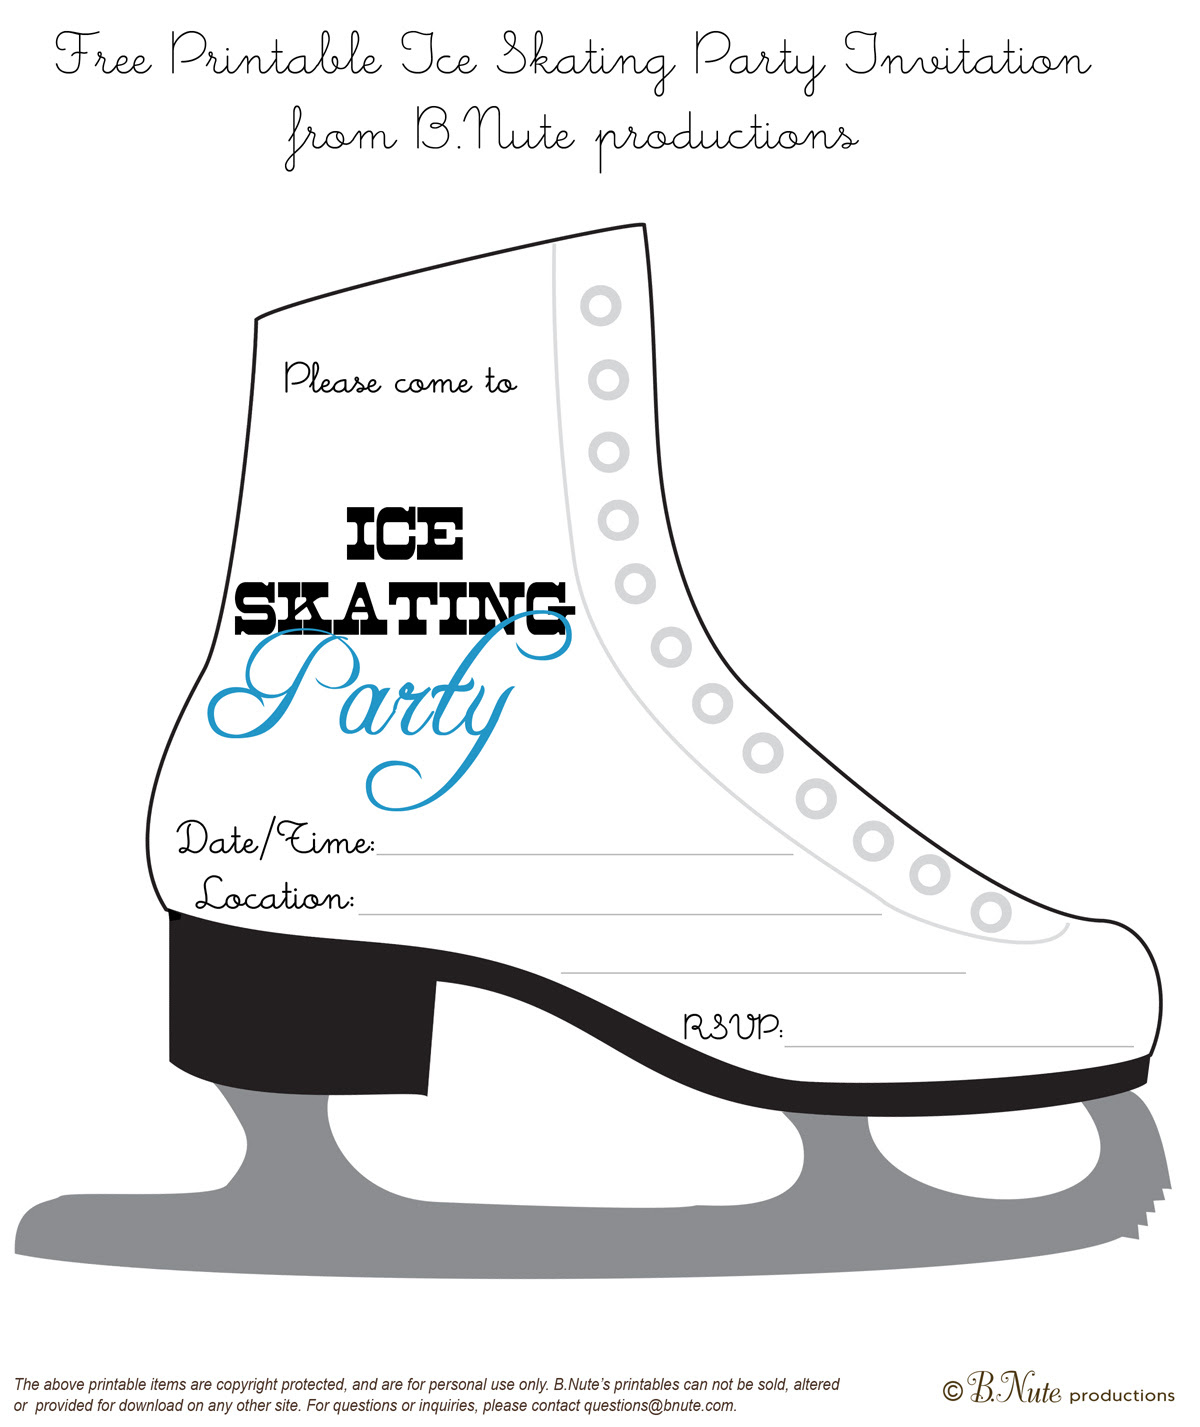 bnute productions: Free Printable Ice Skating Party Invitation